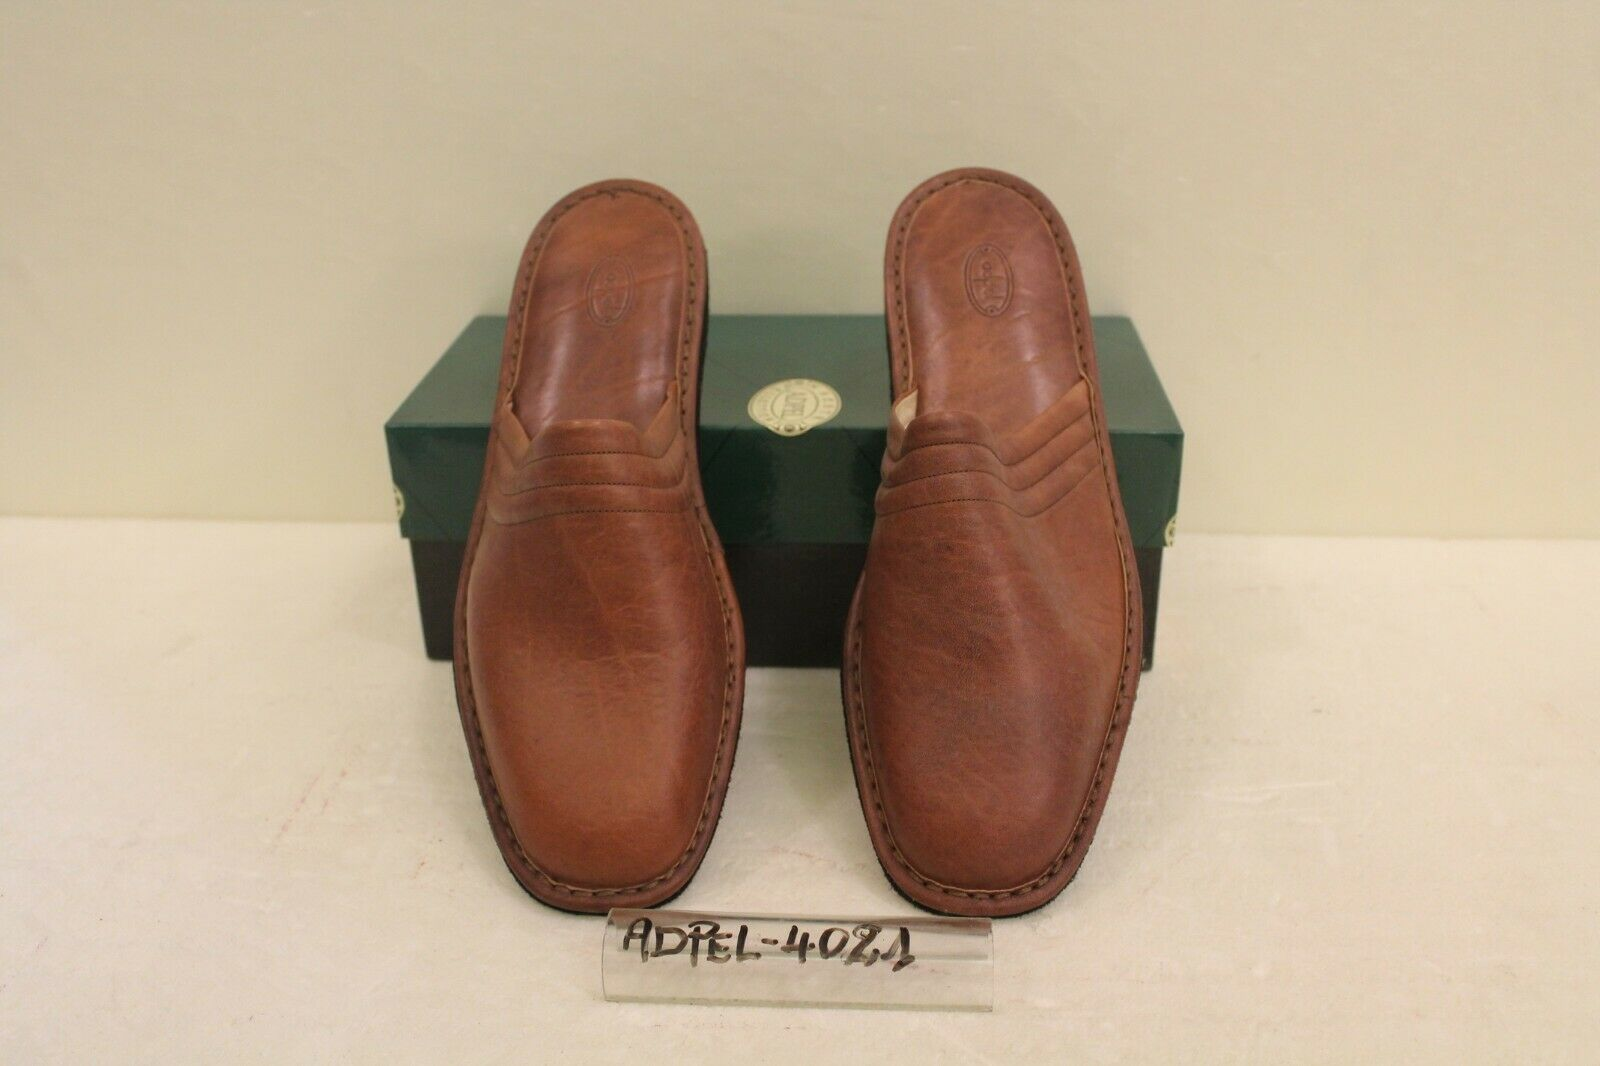 Pantofole hombres in Pelle - Cod.4021 - Adpel